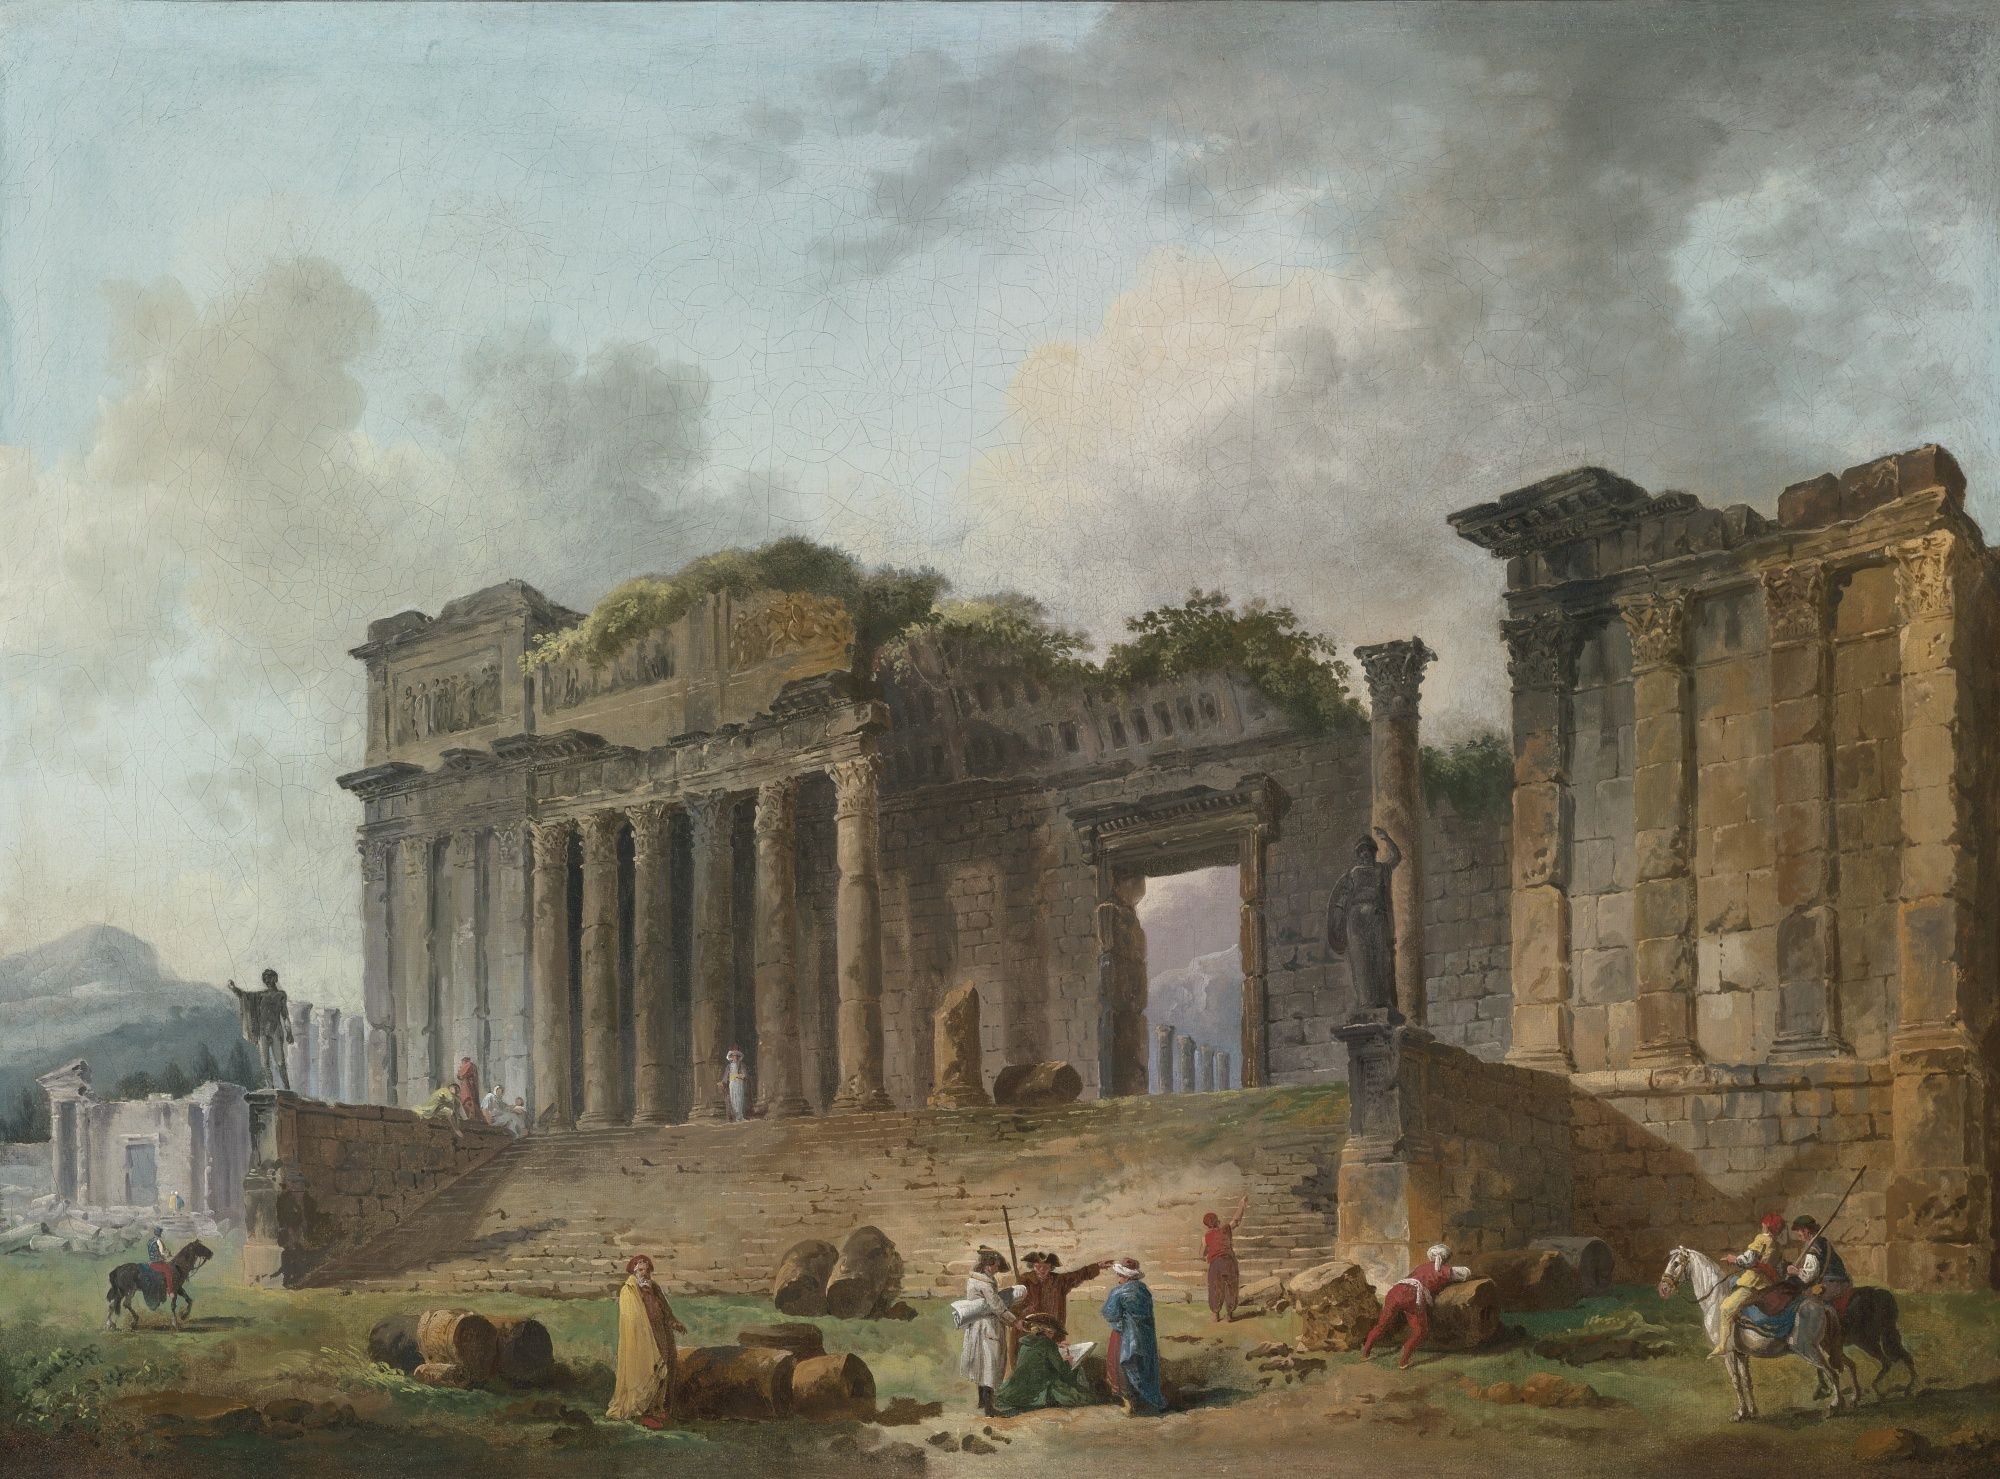 HUBERT ROBERT PARIS 1733 1808 AN ARCHITECTURAL CAPRICCIO WITH AN ARTIST SKETCHING IN THE FOREGROUND